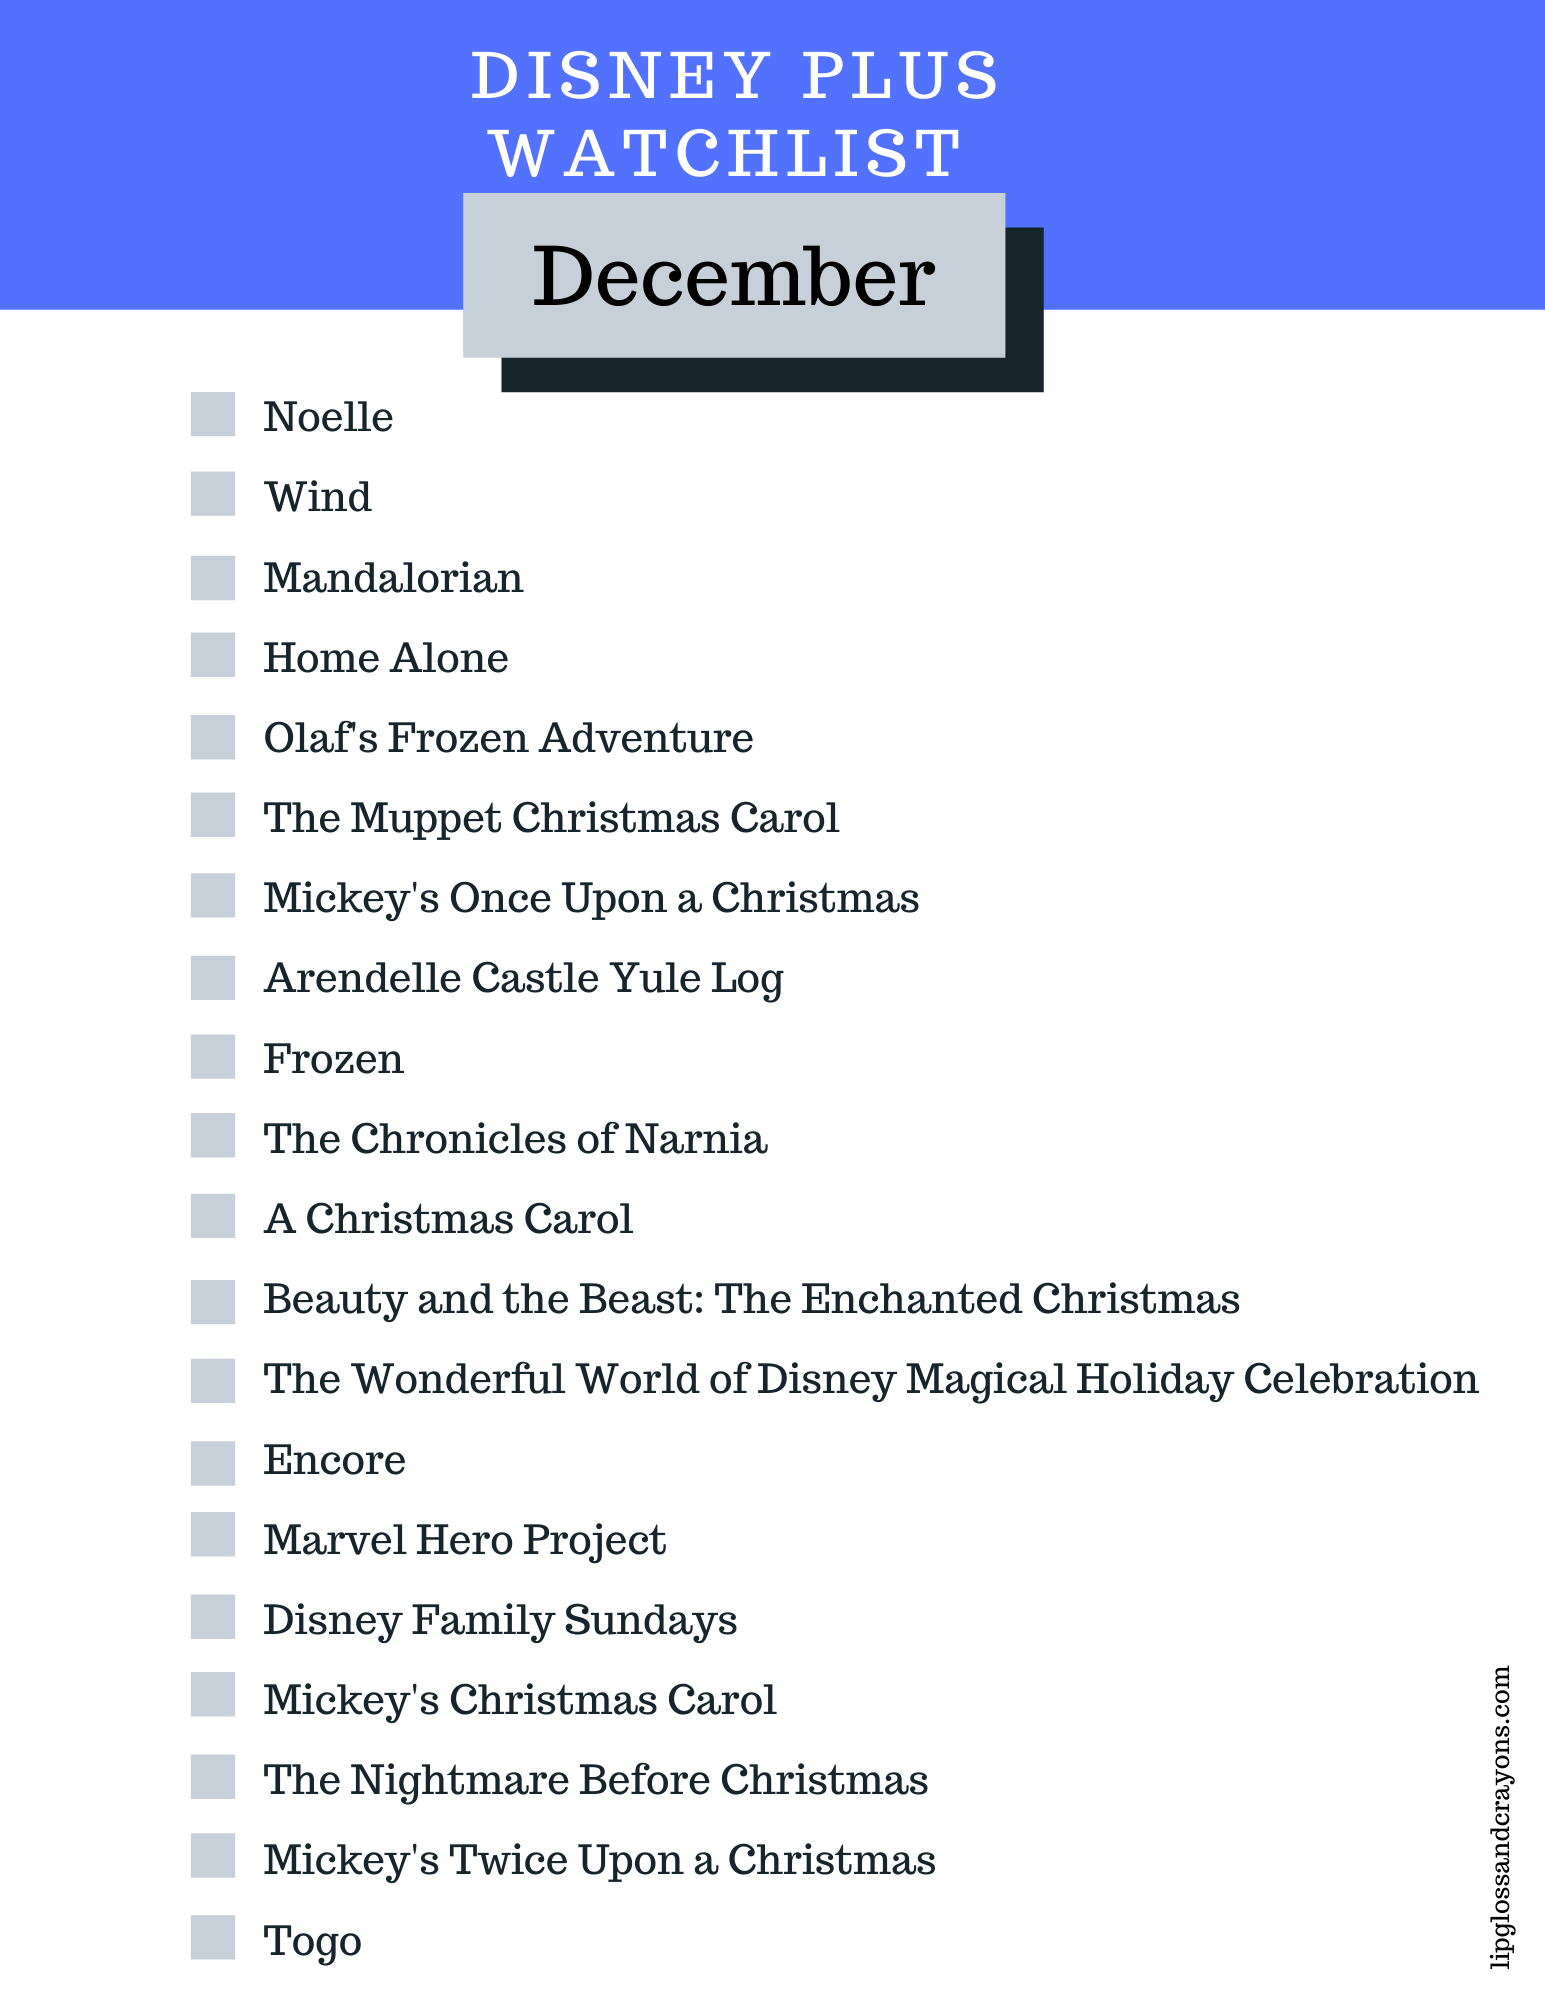 Looking for a list of Disney Plus movies to watch? This is the complete free printable Disney Plus Watchlist for December!